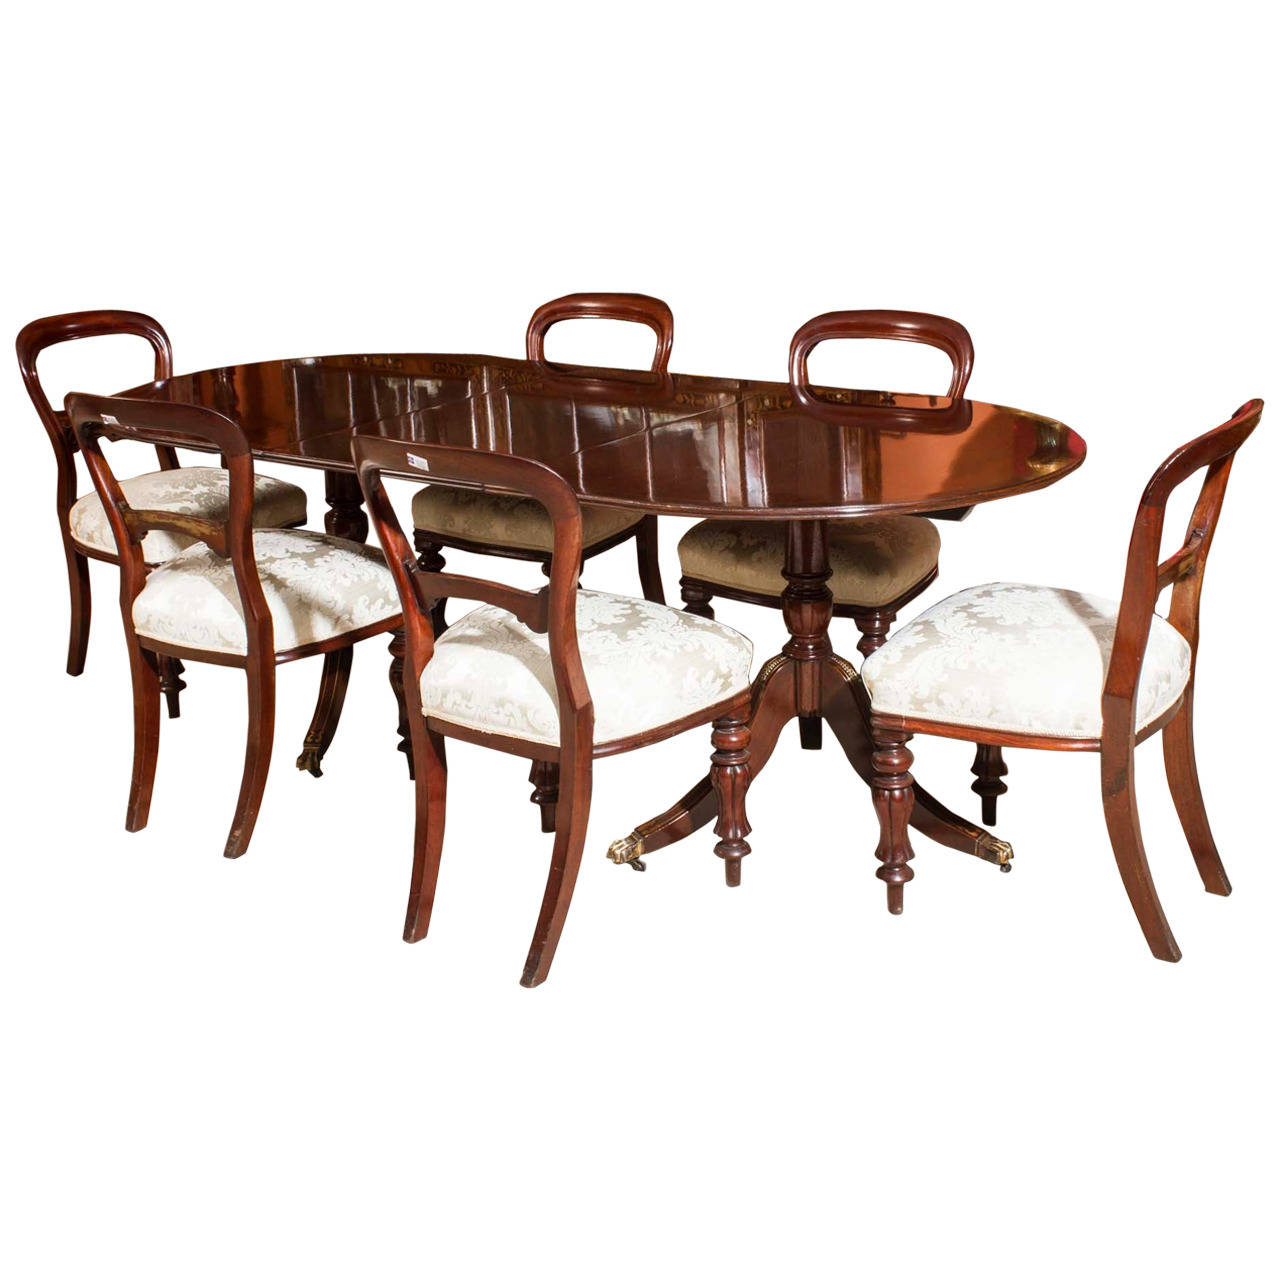 dining chair styles antique cool living room chairs vintage regency style table and 6